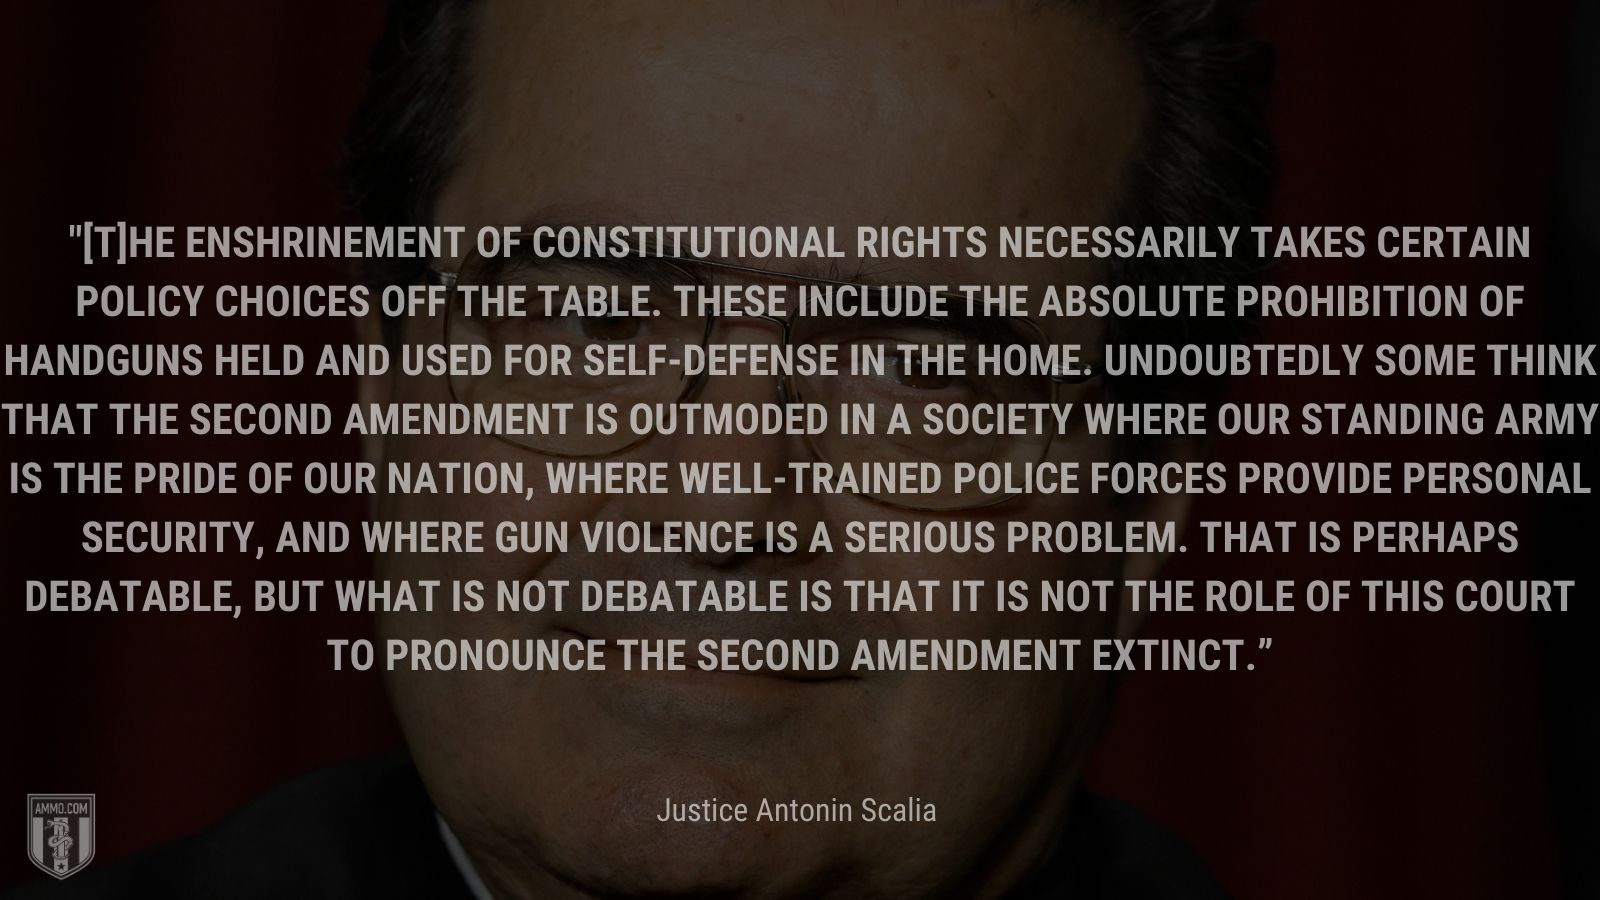 """""""[T]he enshrinement of constitutional rights necessarily takes certain policy choices off the table. These include the absolute prohibition of handguns held and used for self-defense in the home. Undoubtedly some think that the Second Amendment is outmoded in a society where our standing army is the pride of our Nation, where well-trained police forces provide personal security, and where gun violence is a serious problem. That is perhaps debatable, but what is not debatable is that it is not the role of this Court to pronounce the Second Amendment extinct"""" - Justice Antonin Scalia"""